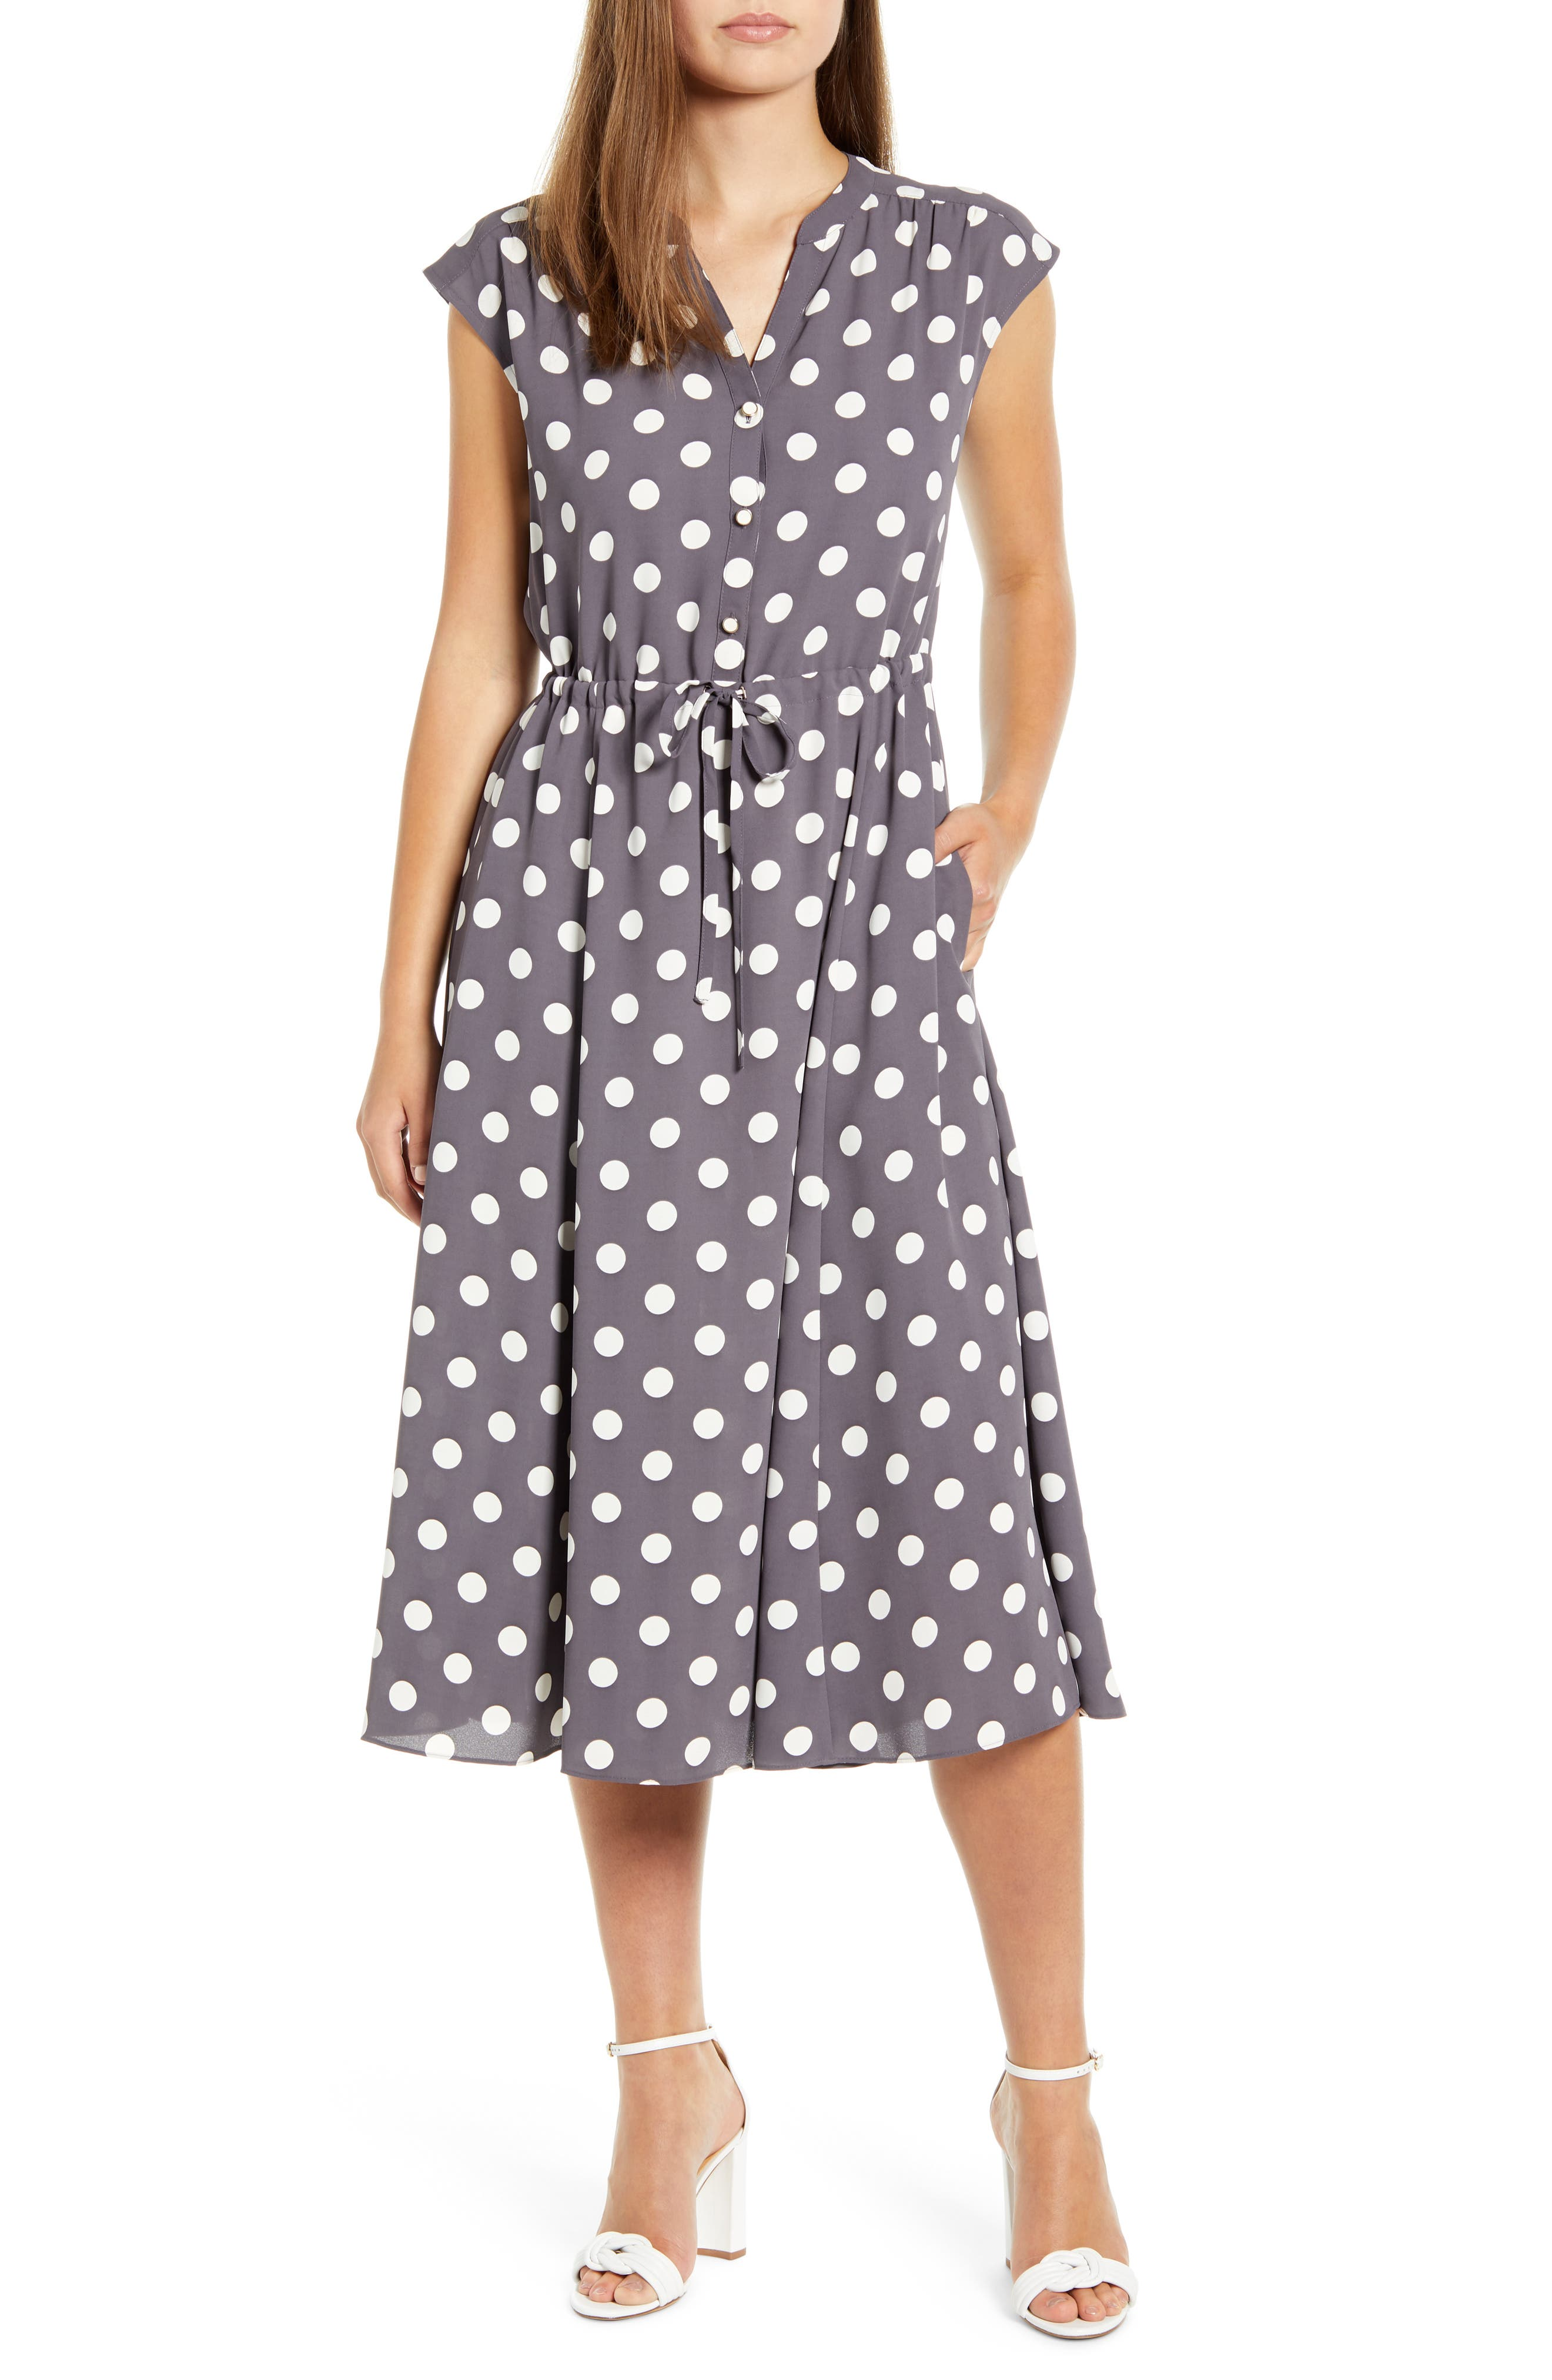 Anne Klein Polka Dot Midi Dress, Grey